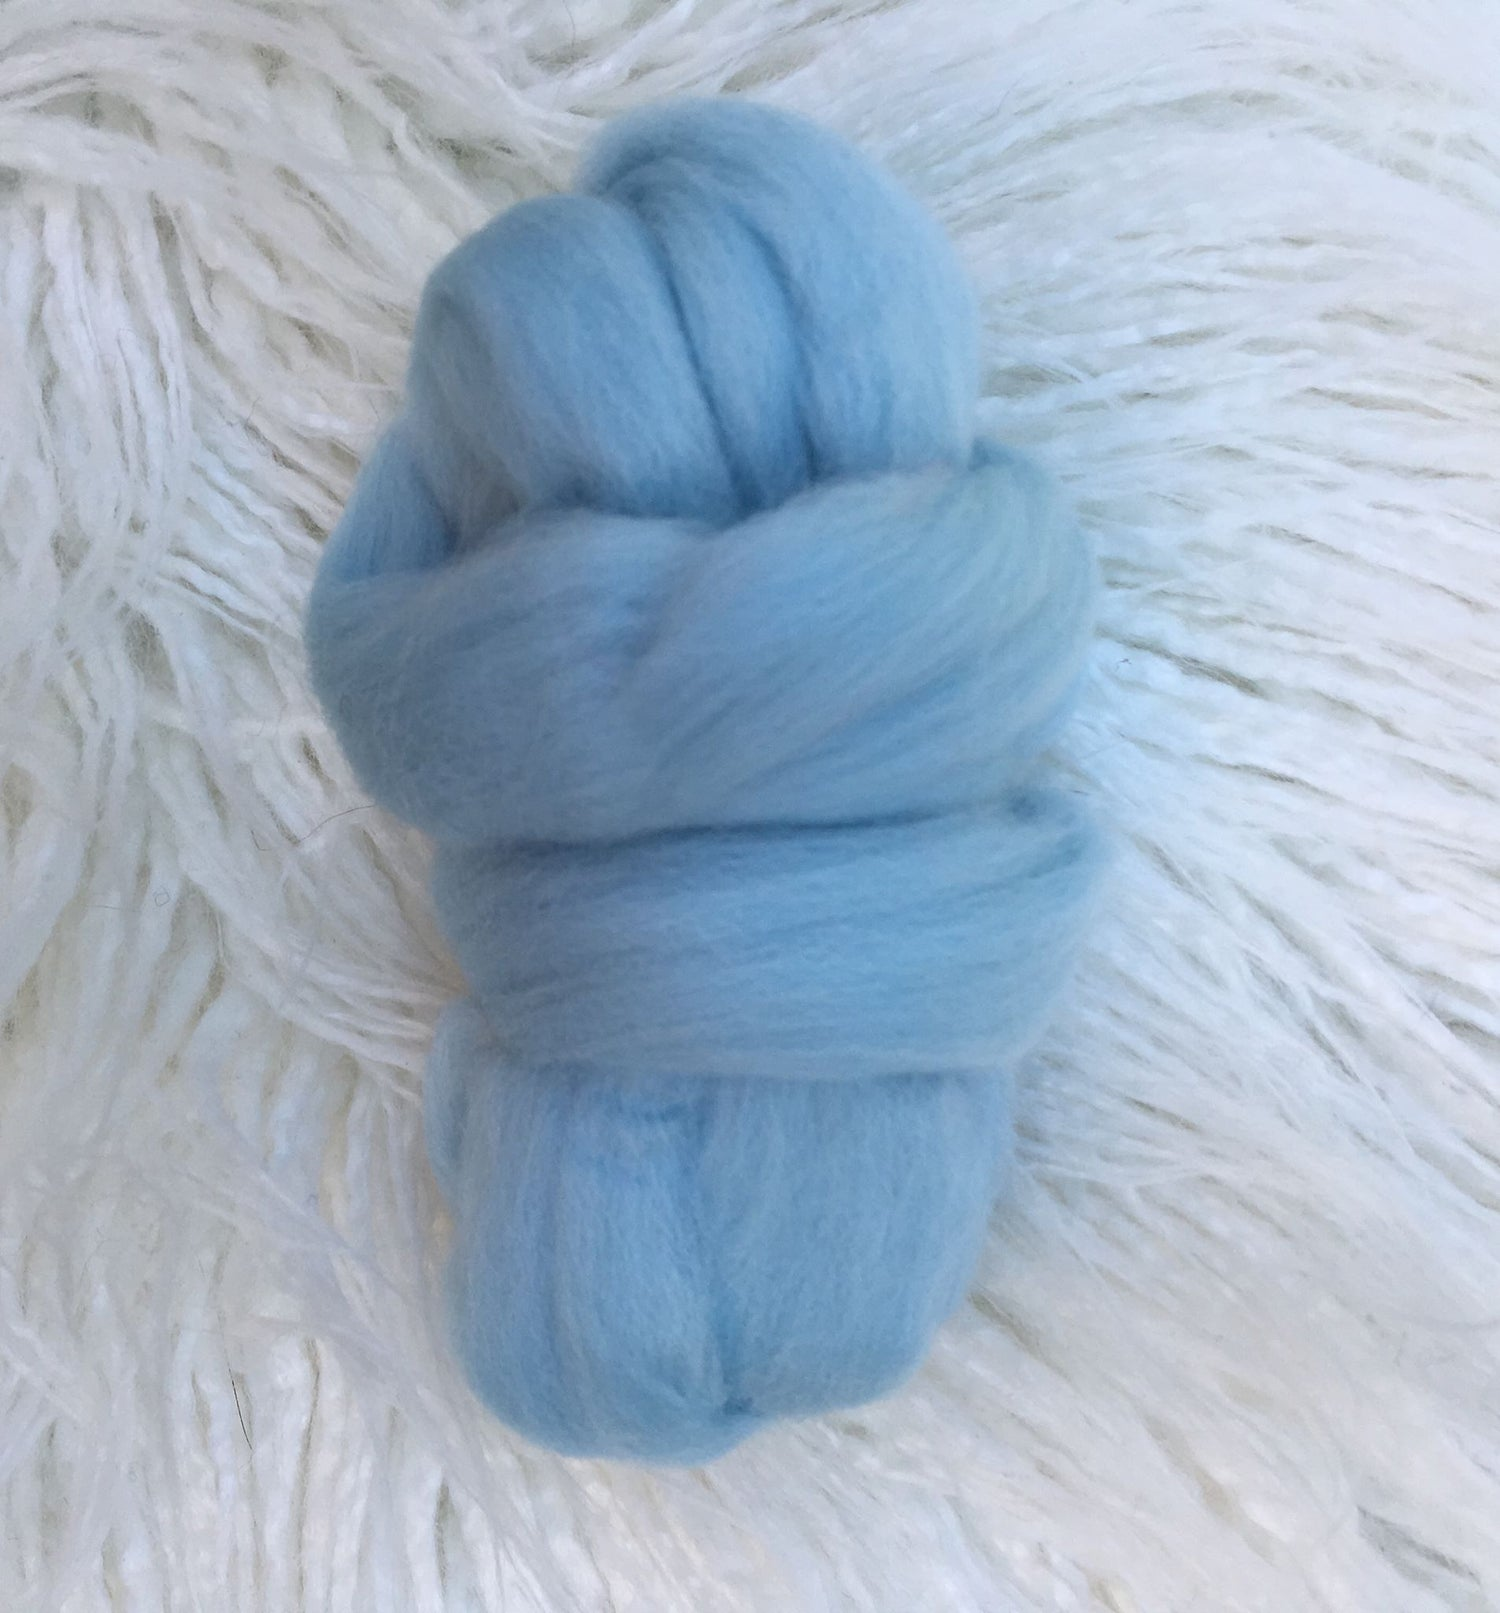 Image of Wool Roving Sold Individually- Off White, Sky Blue, Storm Grey